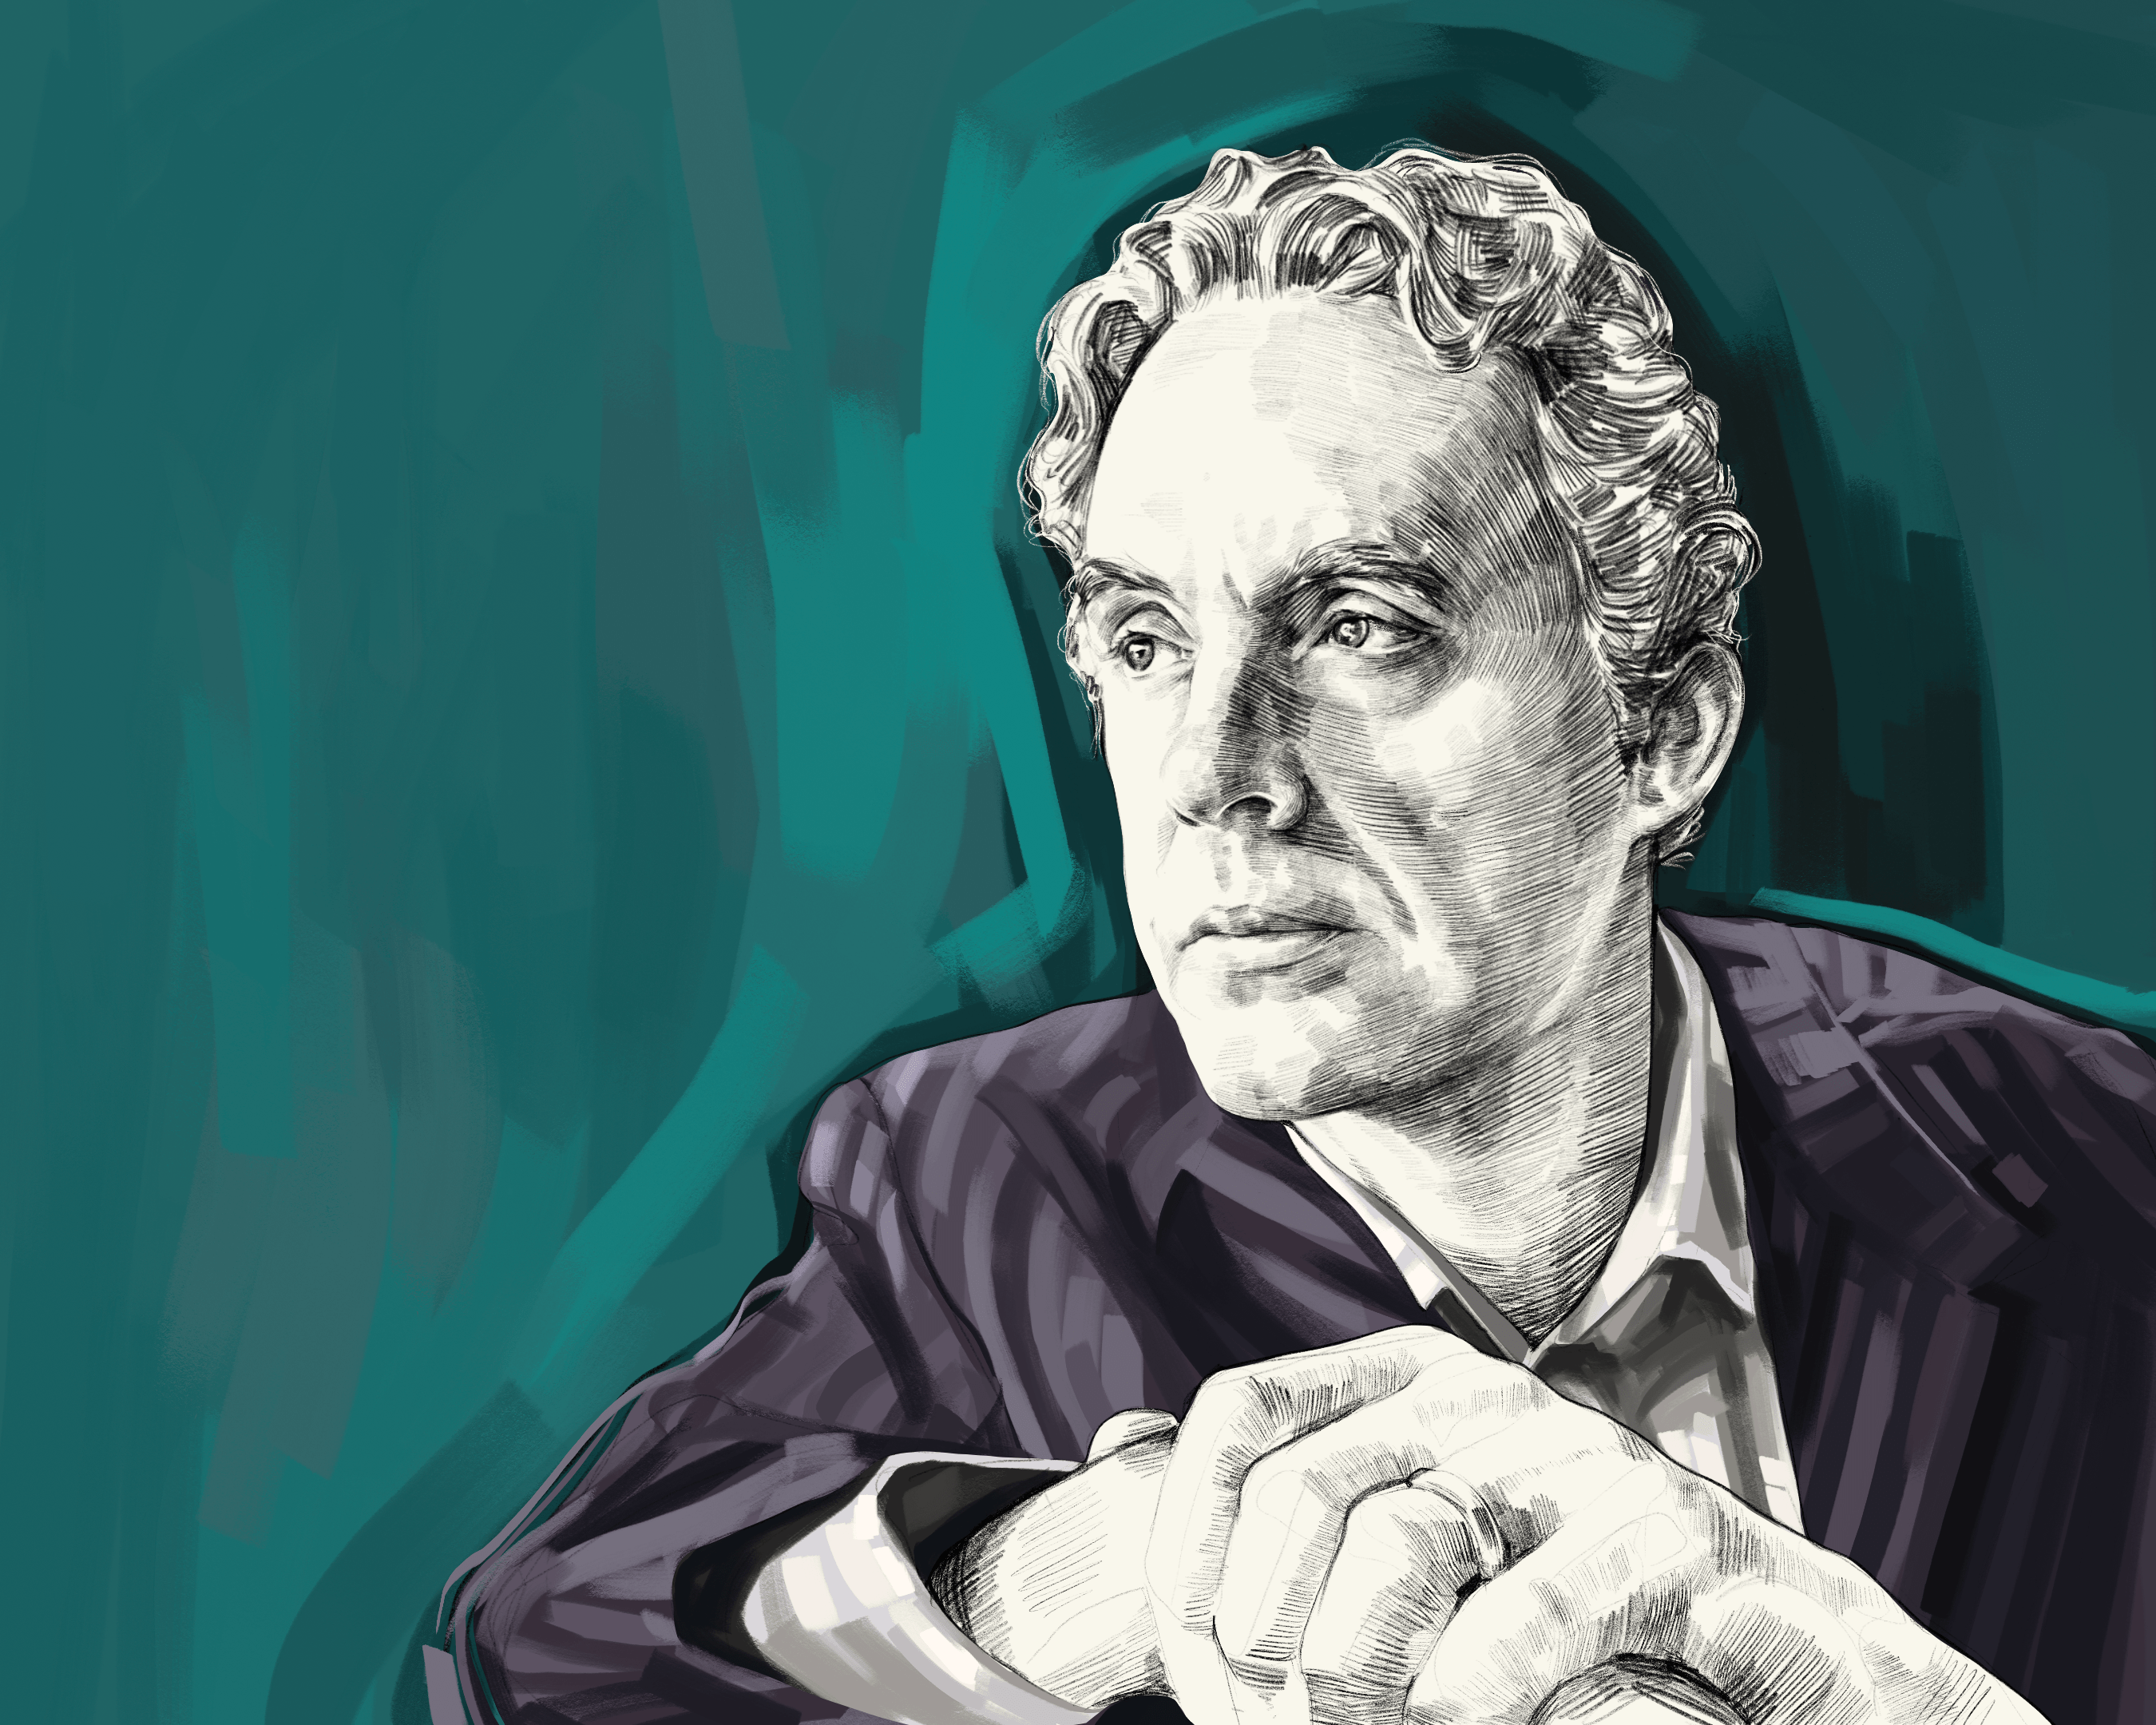 The Tim Ferriss Show Transcripts: Jordan Peterson on Rules for Life, Psychedelics, The Bible, and Much More (#502)